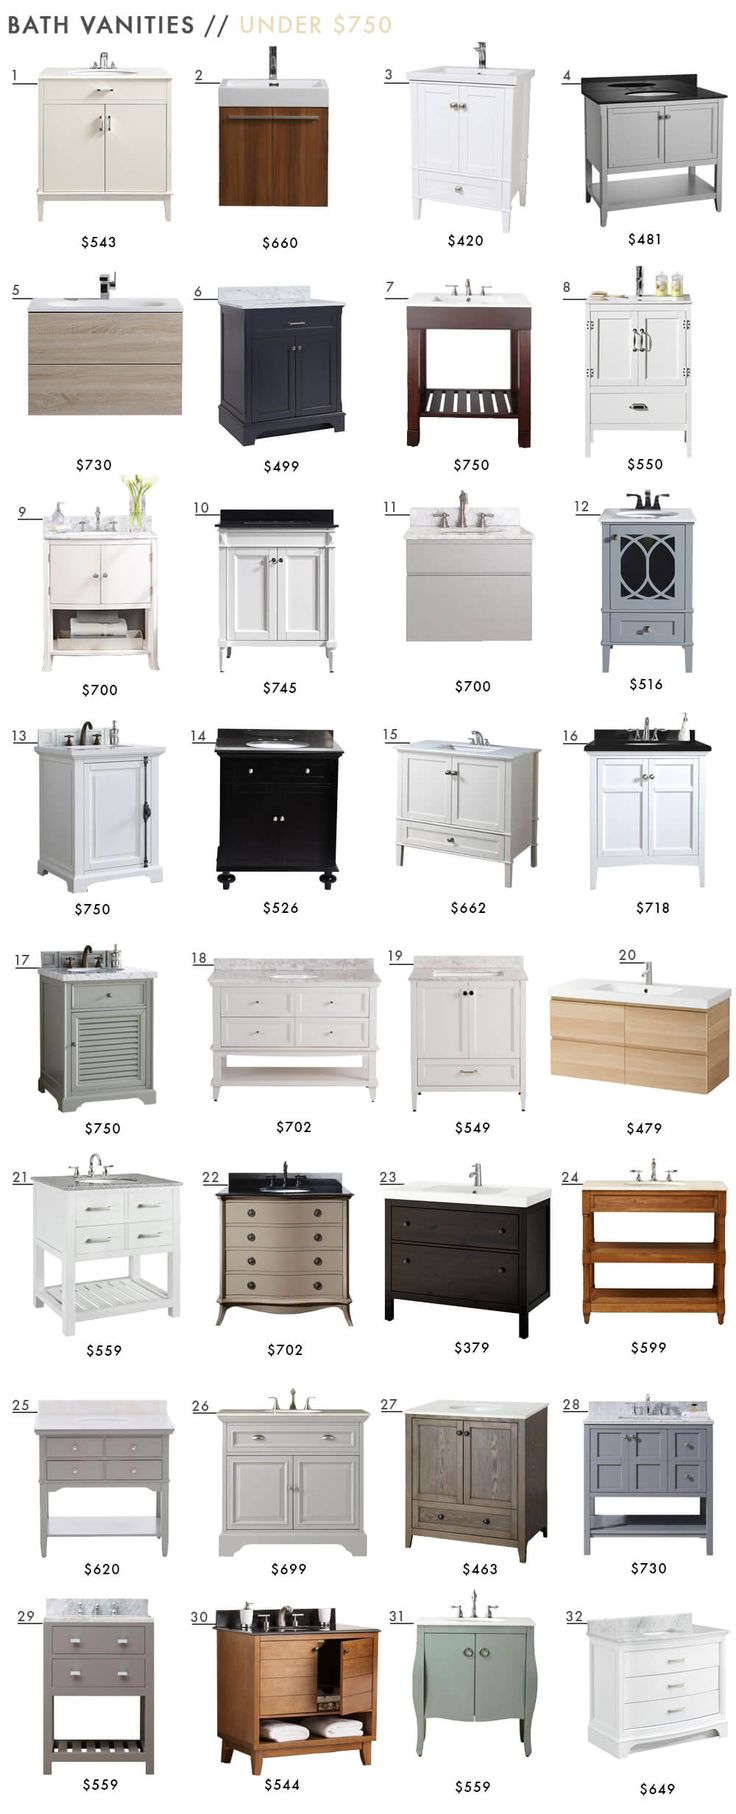 bath-vanities-under-750-roundup-cabinets-sinks-emily-henderson-design